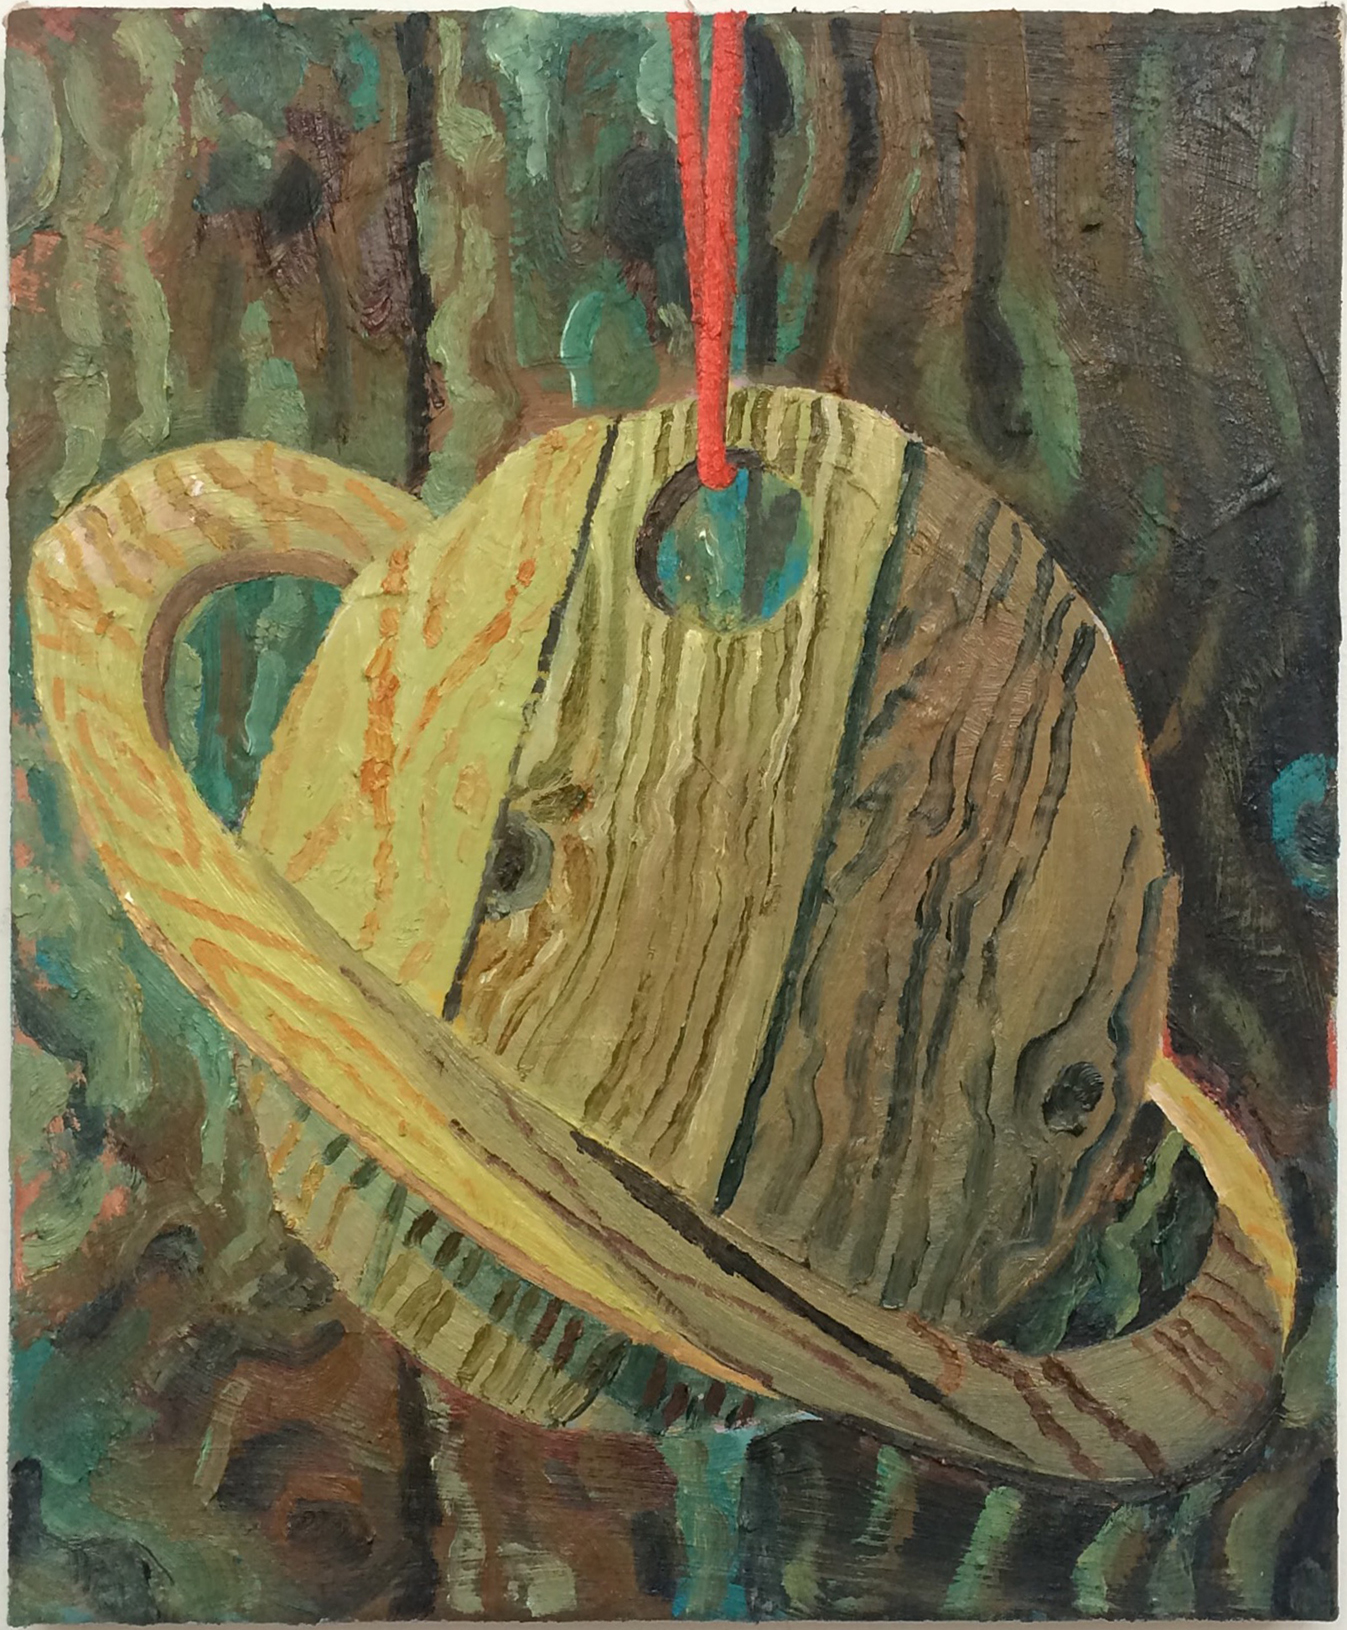 Saturn, 22x34cm, oil on linen, 2016